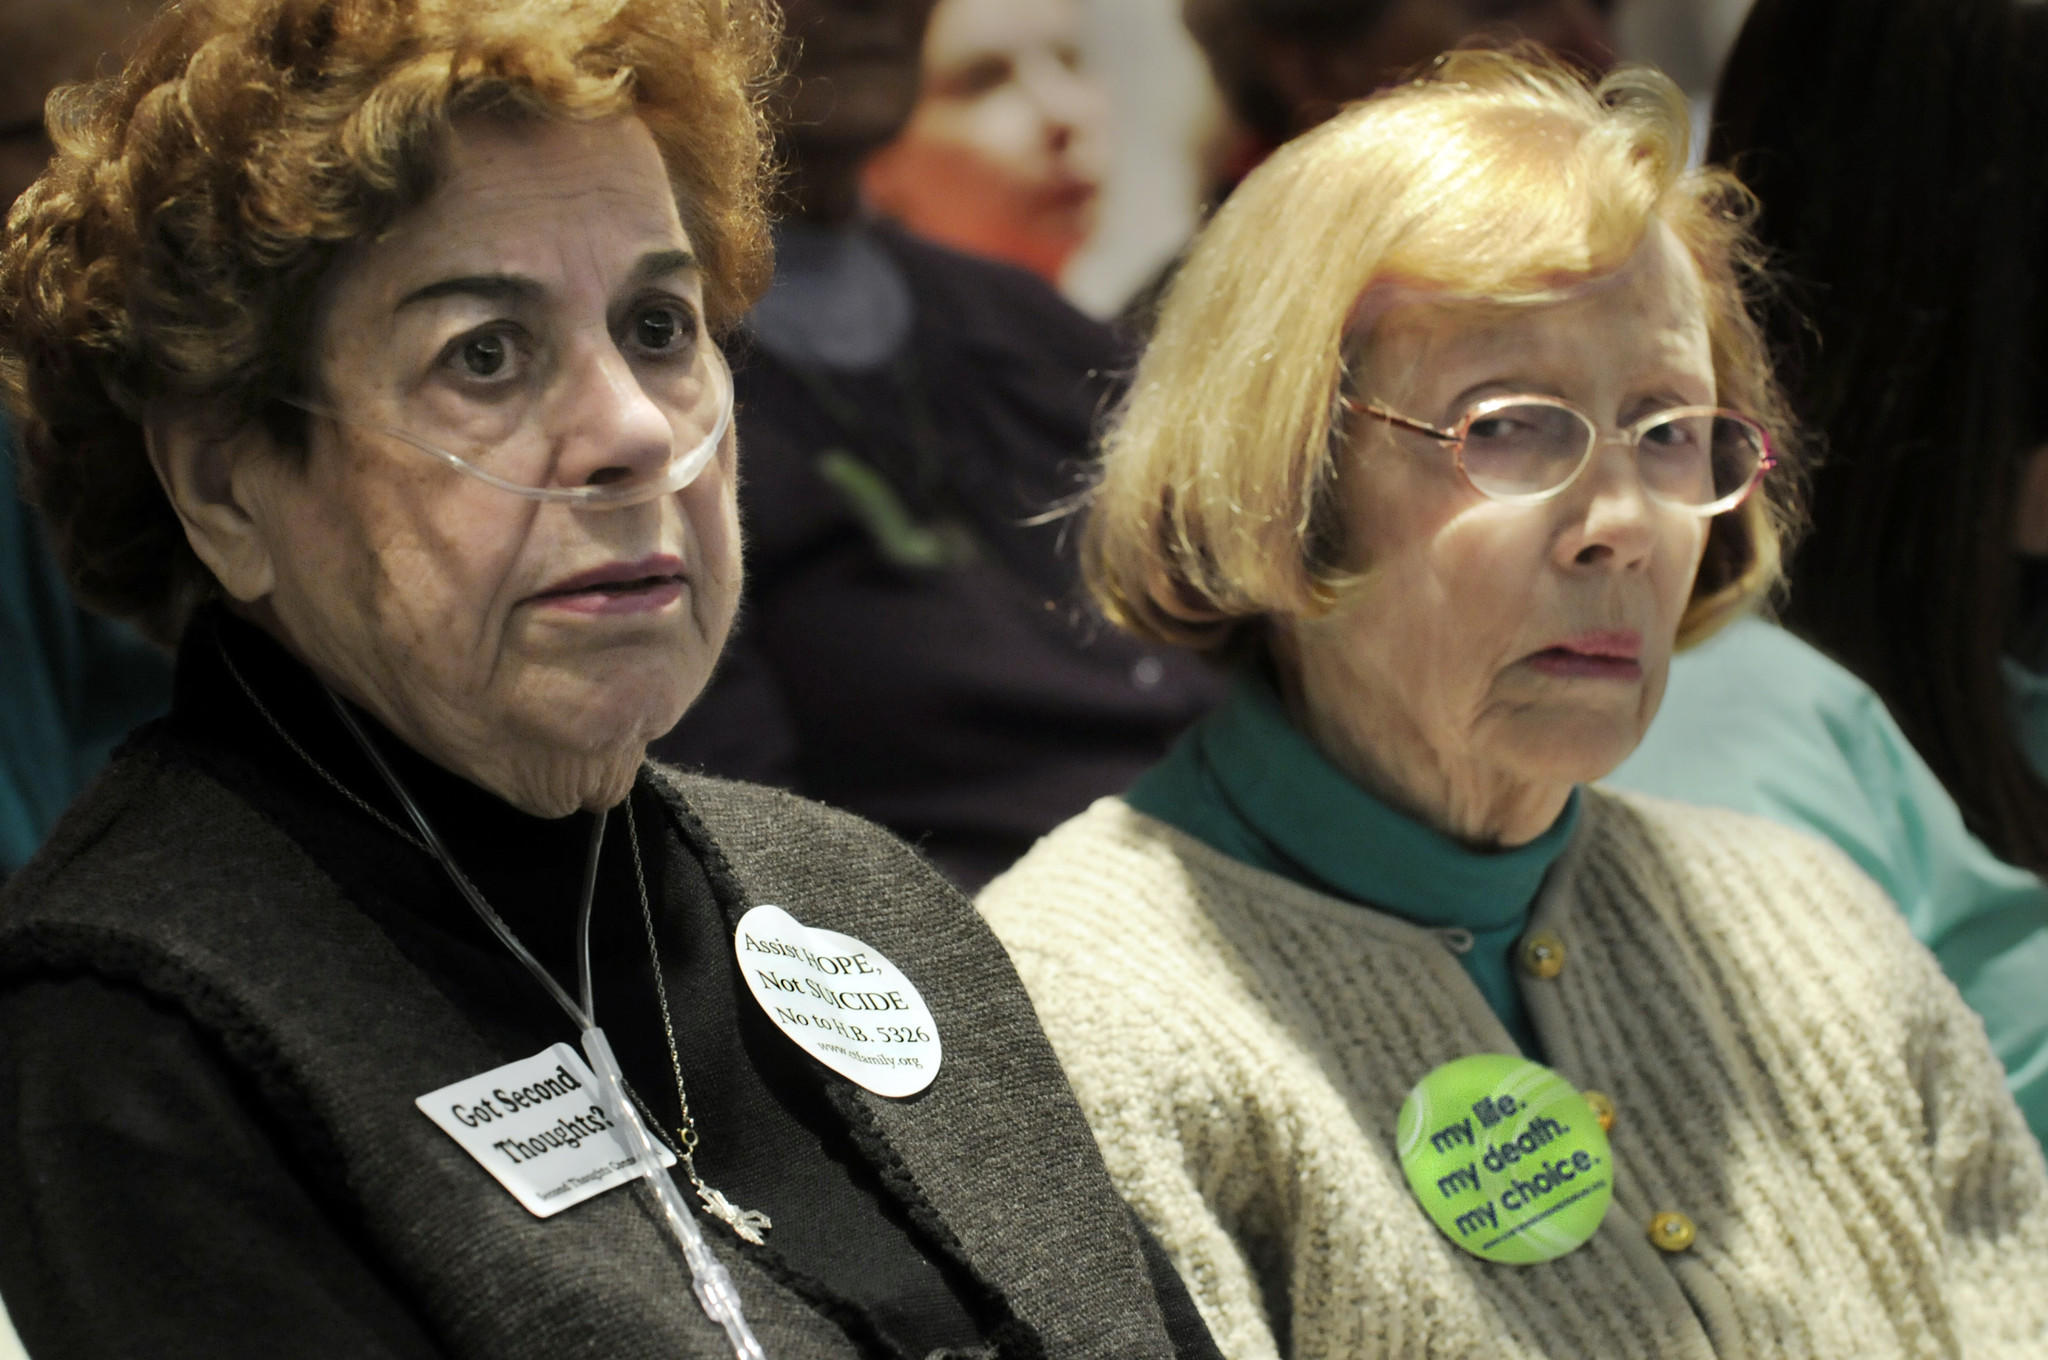 Patricia Conran, left, of Hartford, wore her stickers stating her opposition to the bill while Sally Hart of Essex, right, wore her stickers in support of the right-to-die bill.